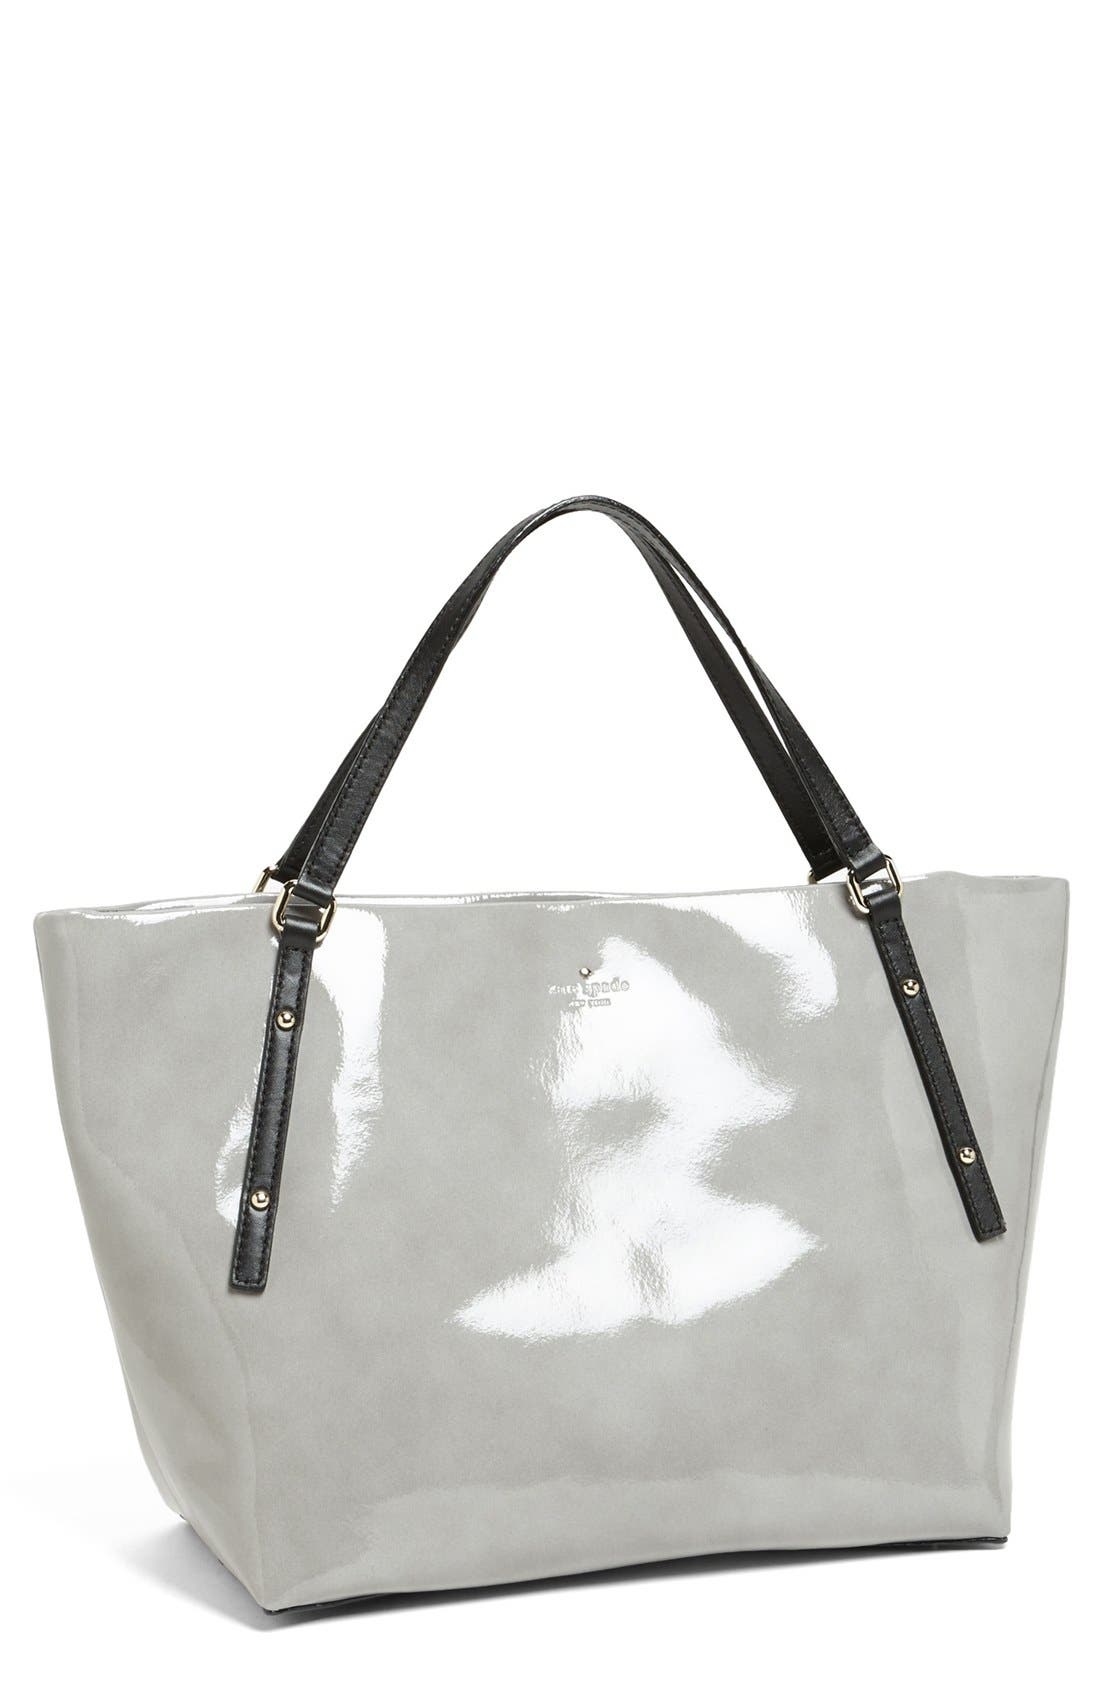 Main Image - kate spade new york 'jackson square - sophie' patent leather tote, large